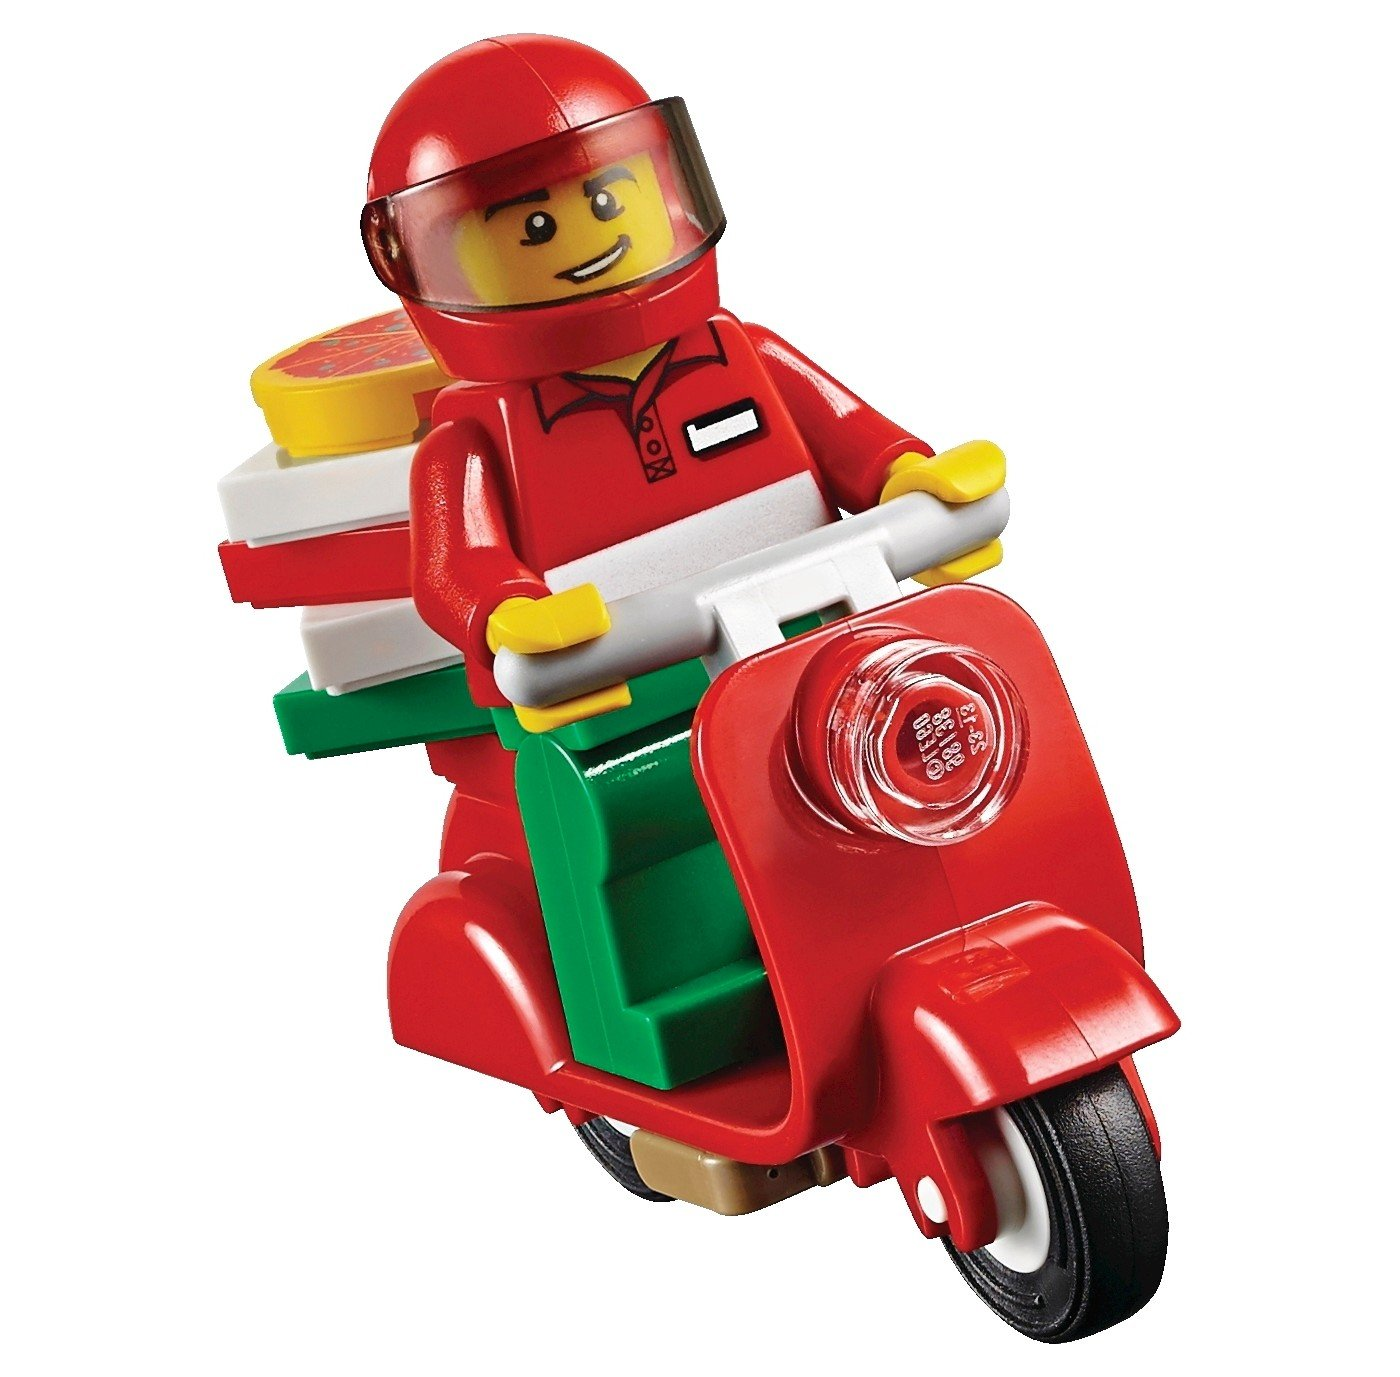 Tall City Delivery >> Lego City Minifigure Pizza Delivery Guy W Scooter Pizza Box 60150